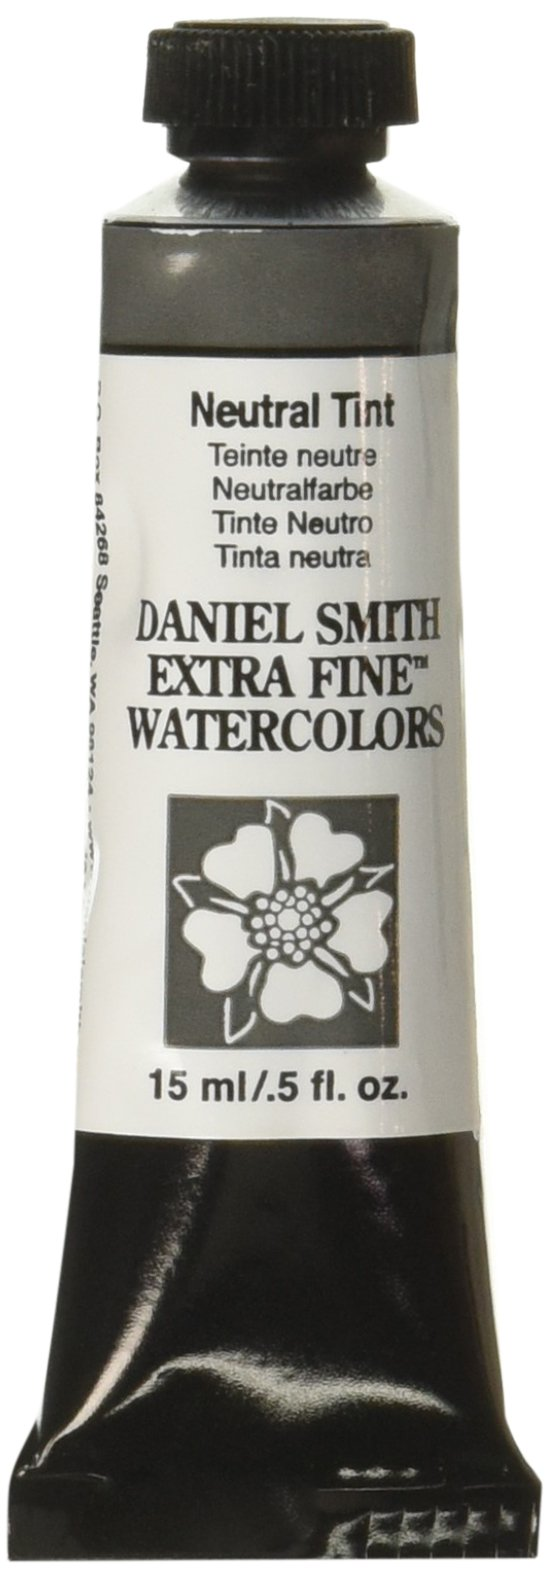 DANIEL SMITH 284600229 Extra Fine Watercolor 15ml Paint Tube, Neutral Tint, 15 ml